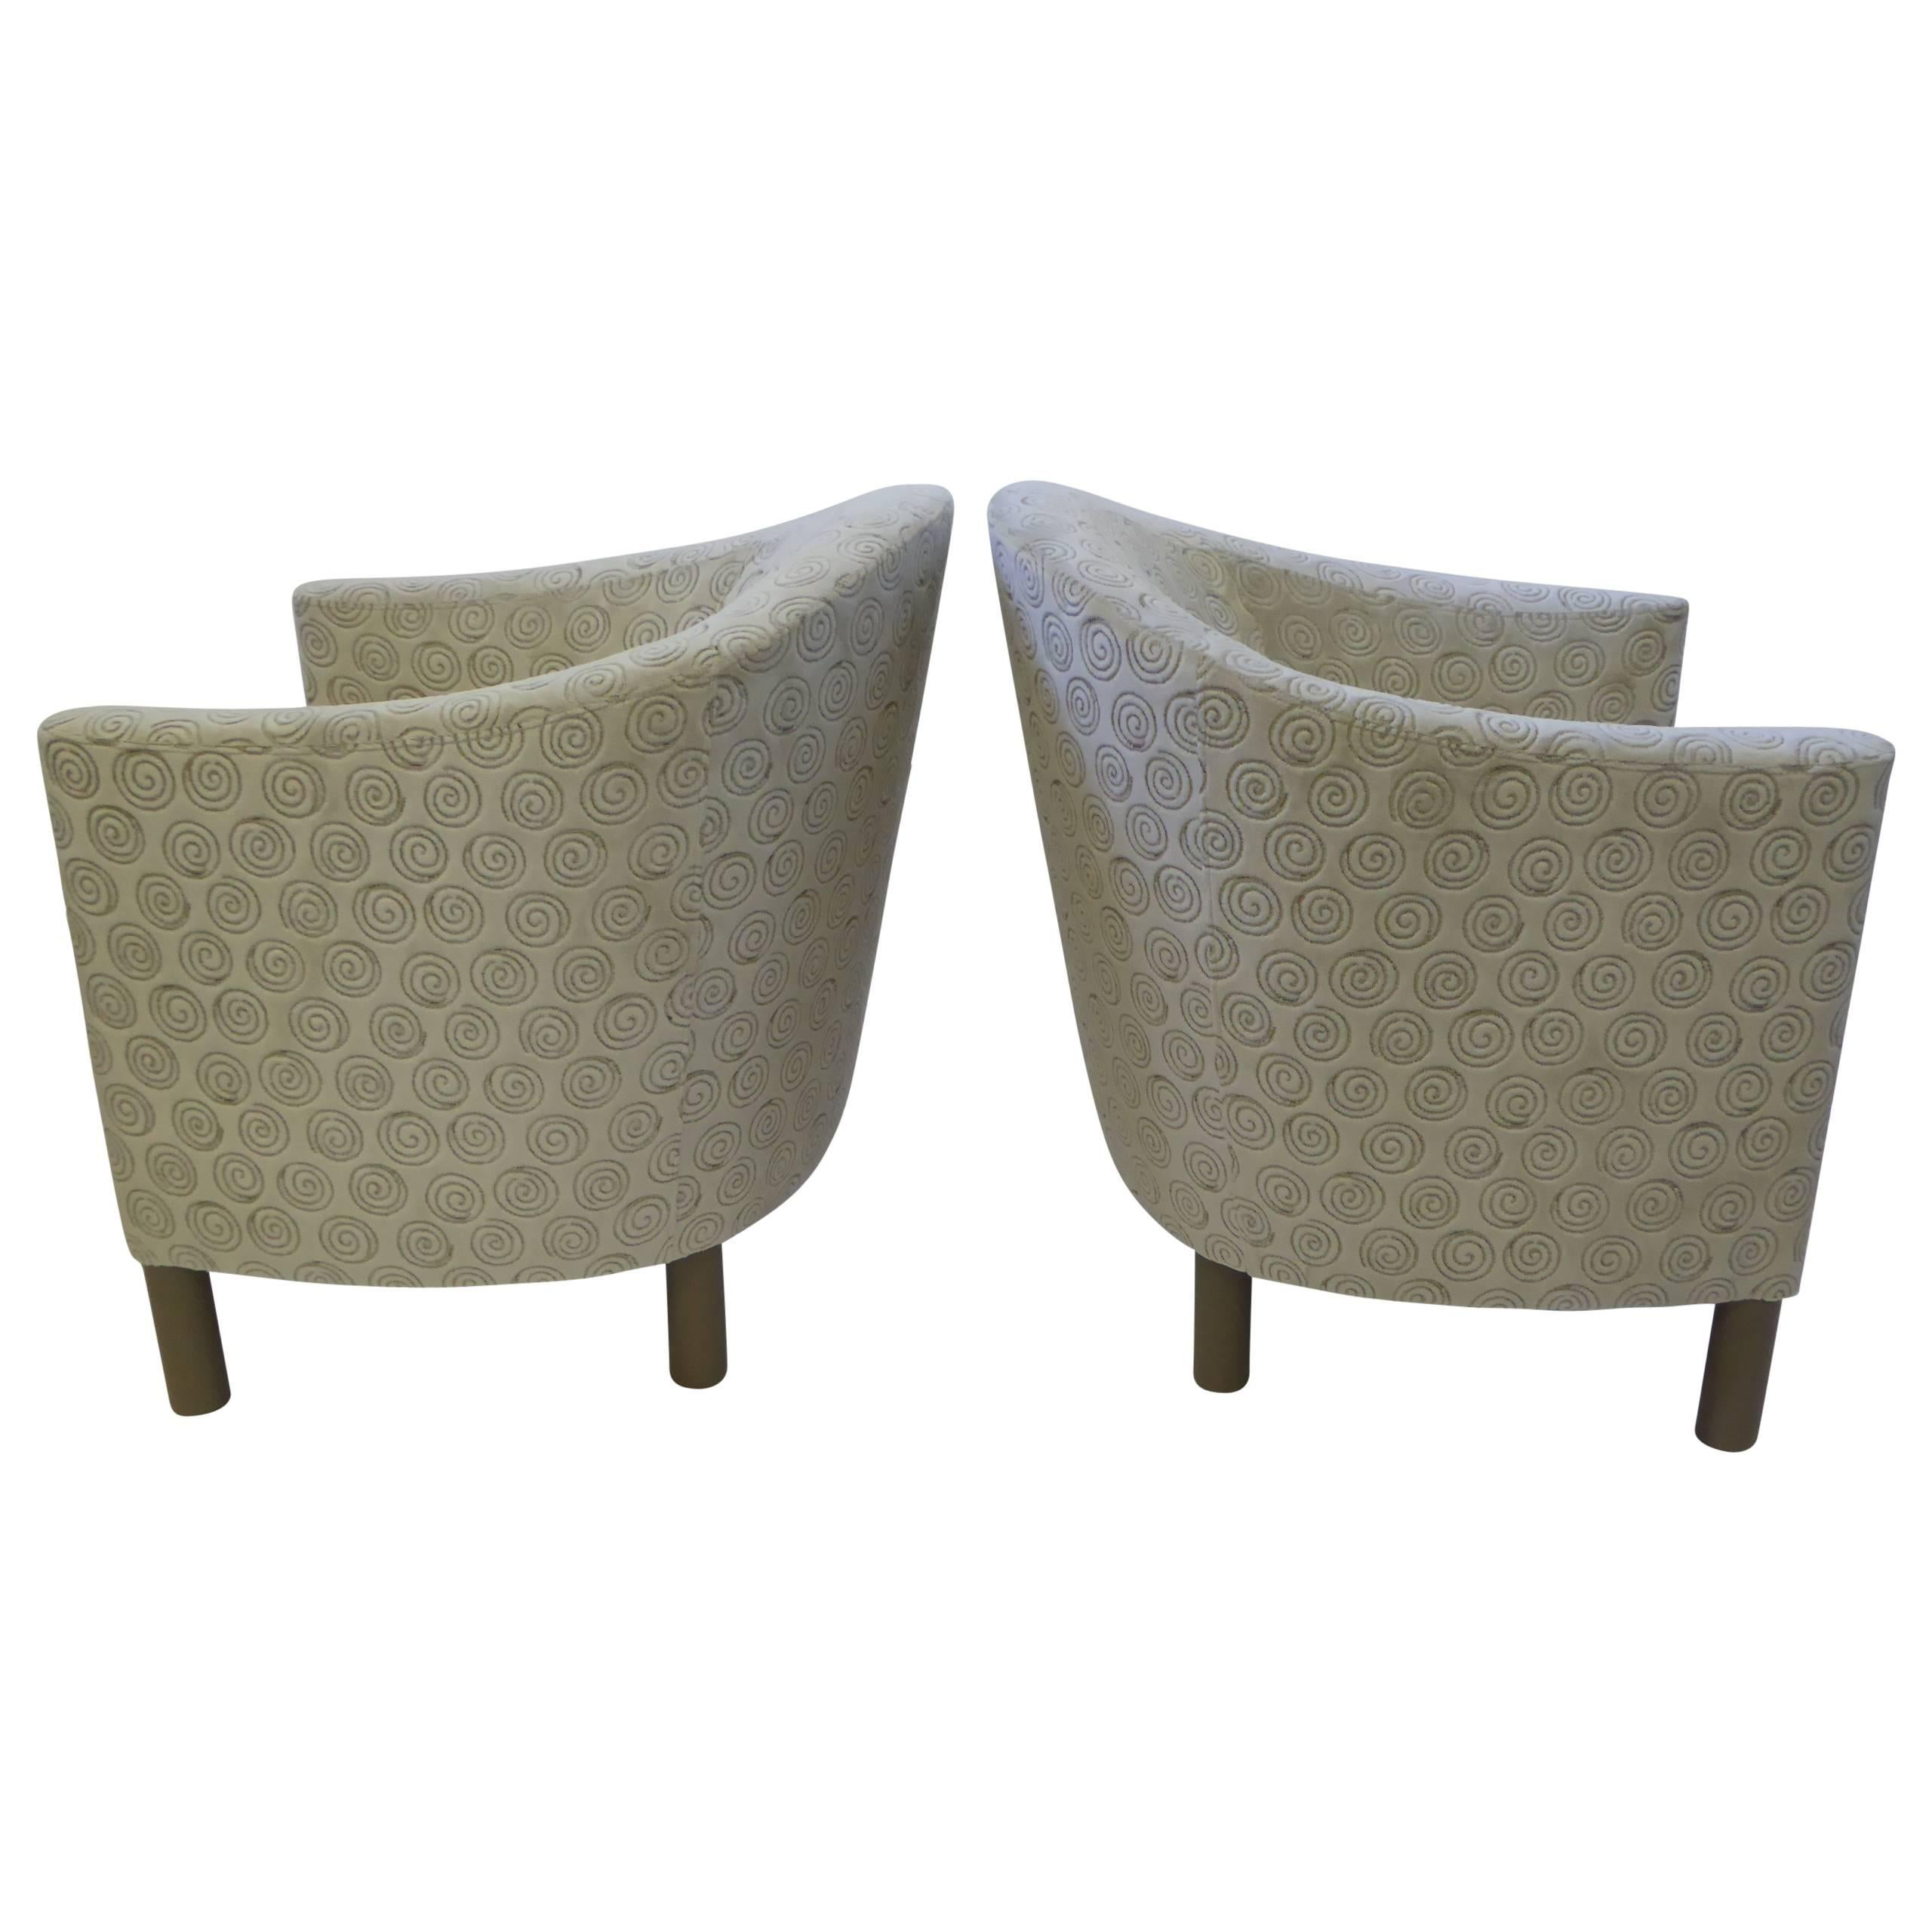 Pair of Mid Century Modern Club Chairs by Brayton International Collection